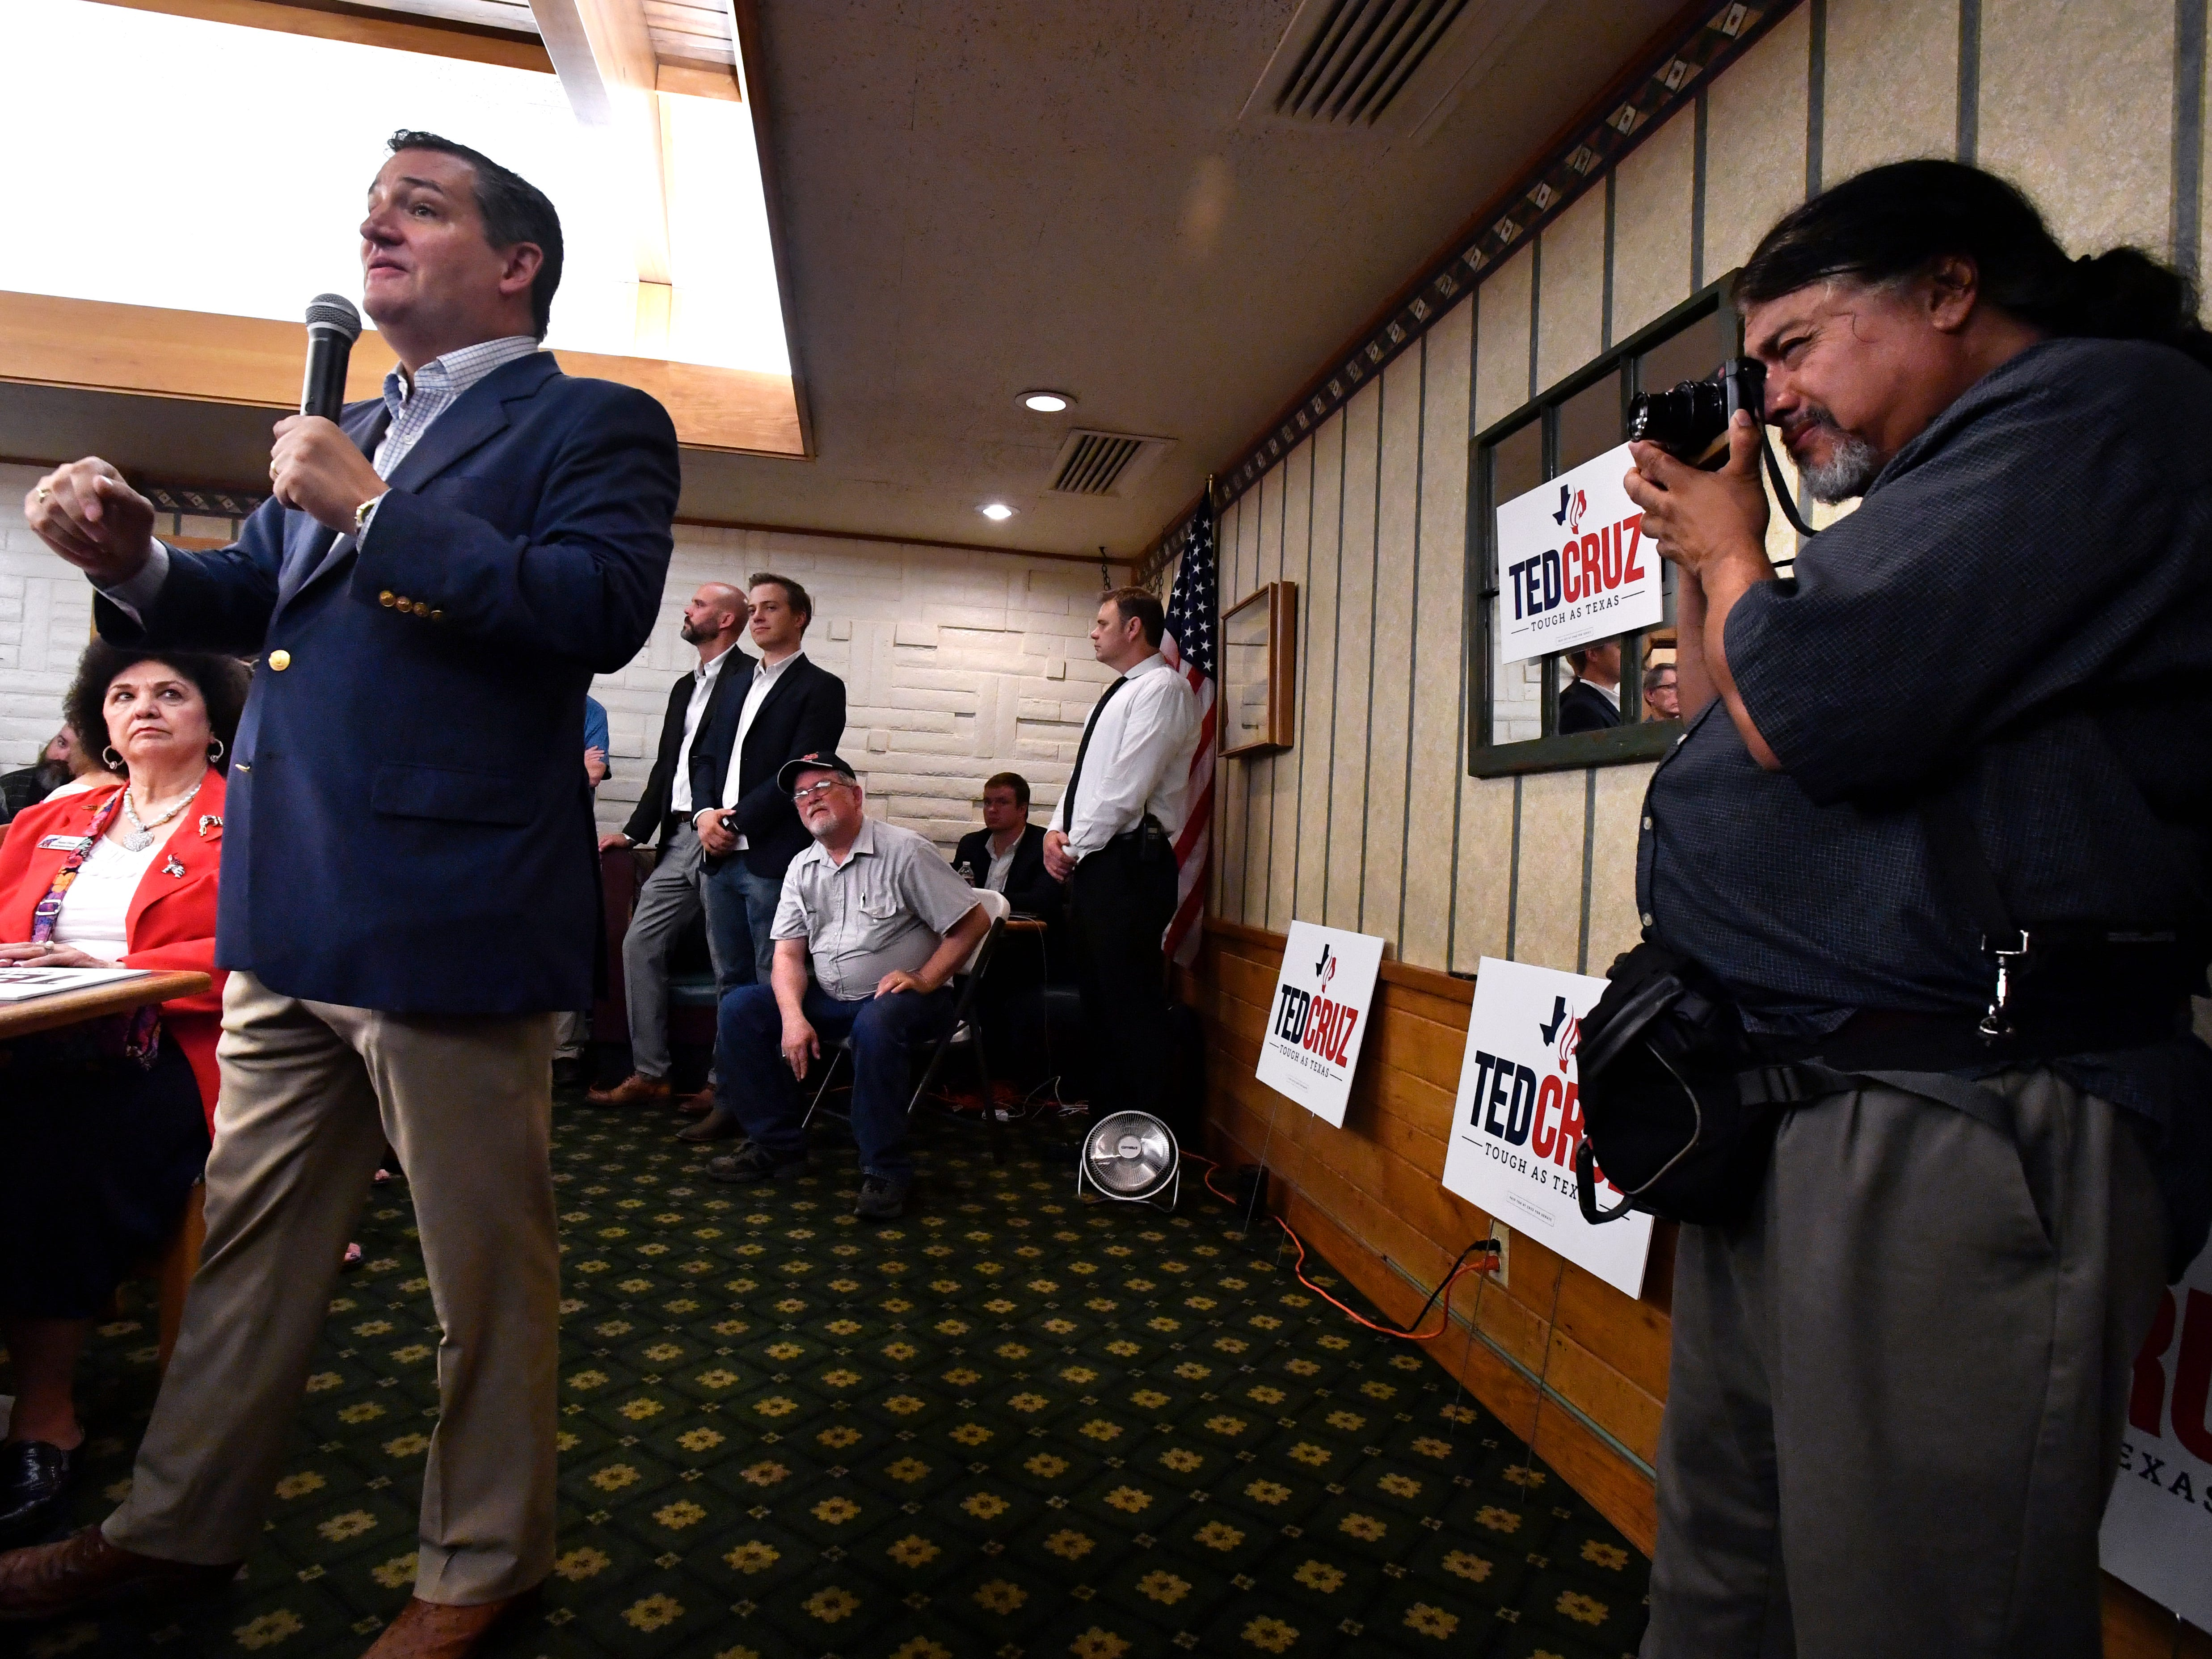 San Antonio Express-News photographer Billy Calzada photographs Senator Ted Cruz during Thursday's town hall meeting in Brownwood August 9, 2018. Media from across the state and nation attended the 90-minuted event.